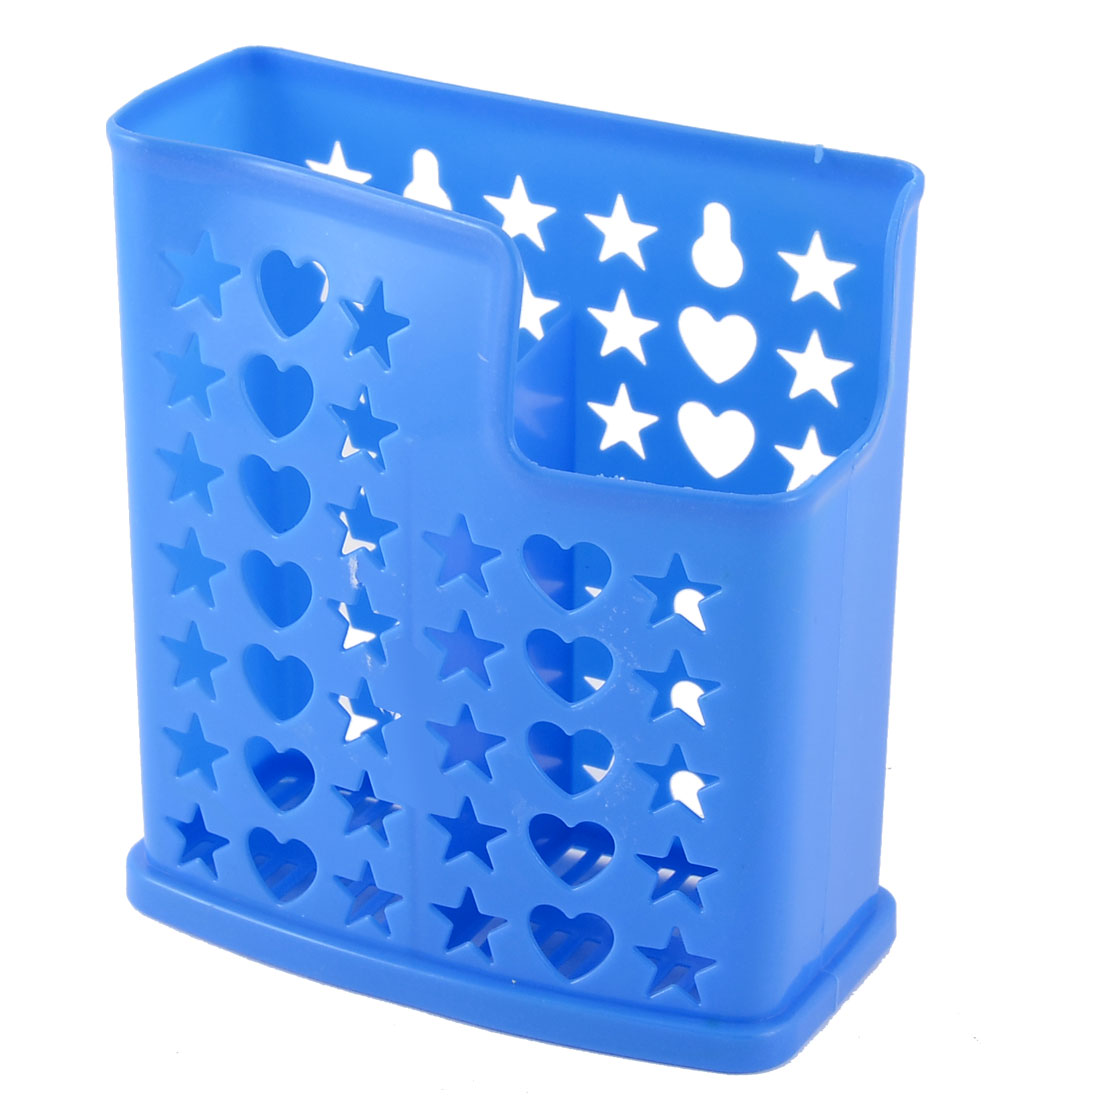 Restaurant Household Hollow Heart Star Plastic Fork Spoon Chopsticks Cage Holder Organizer Blue